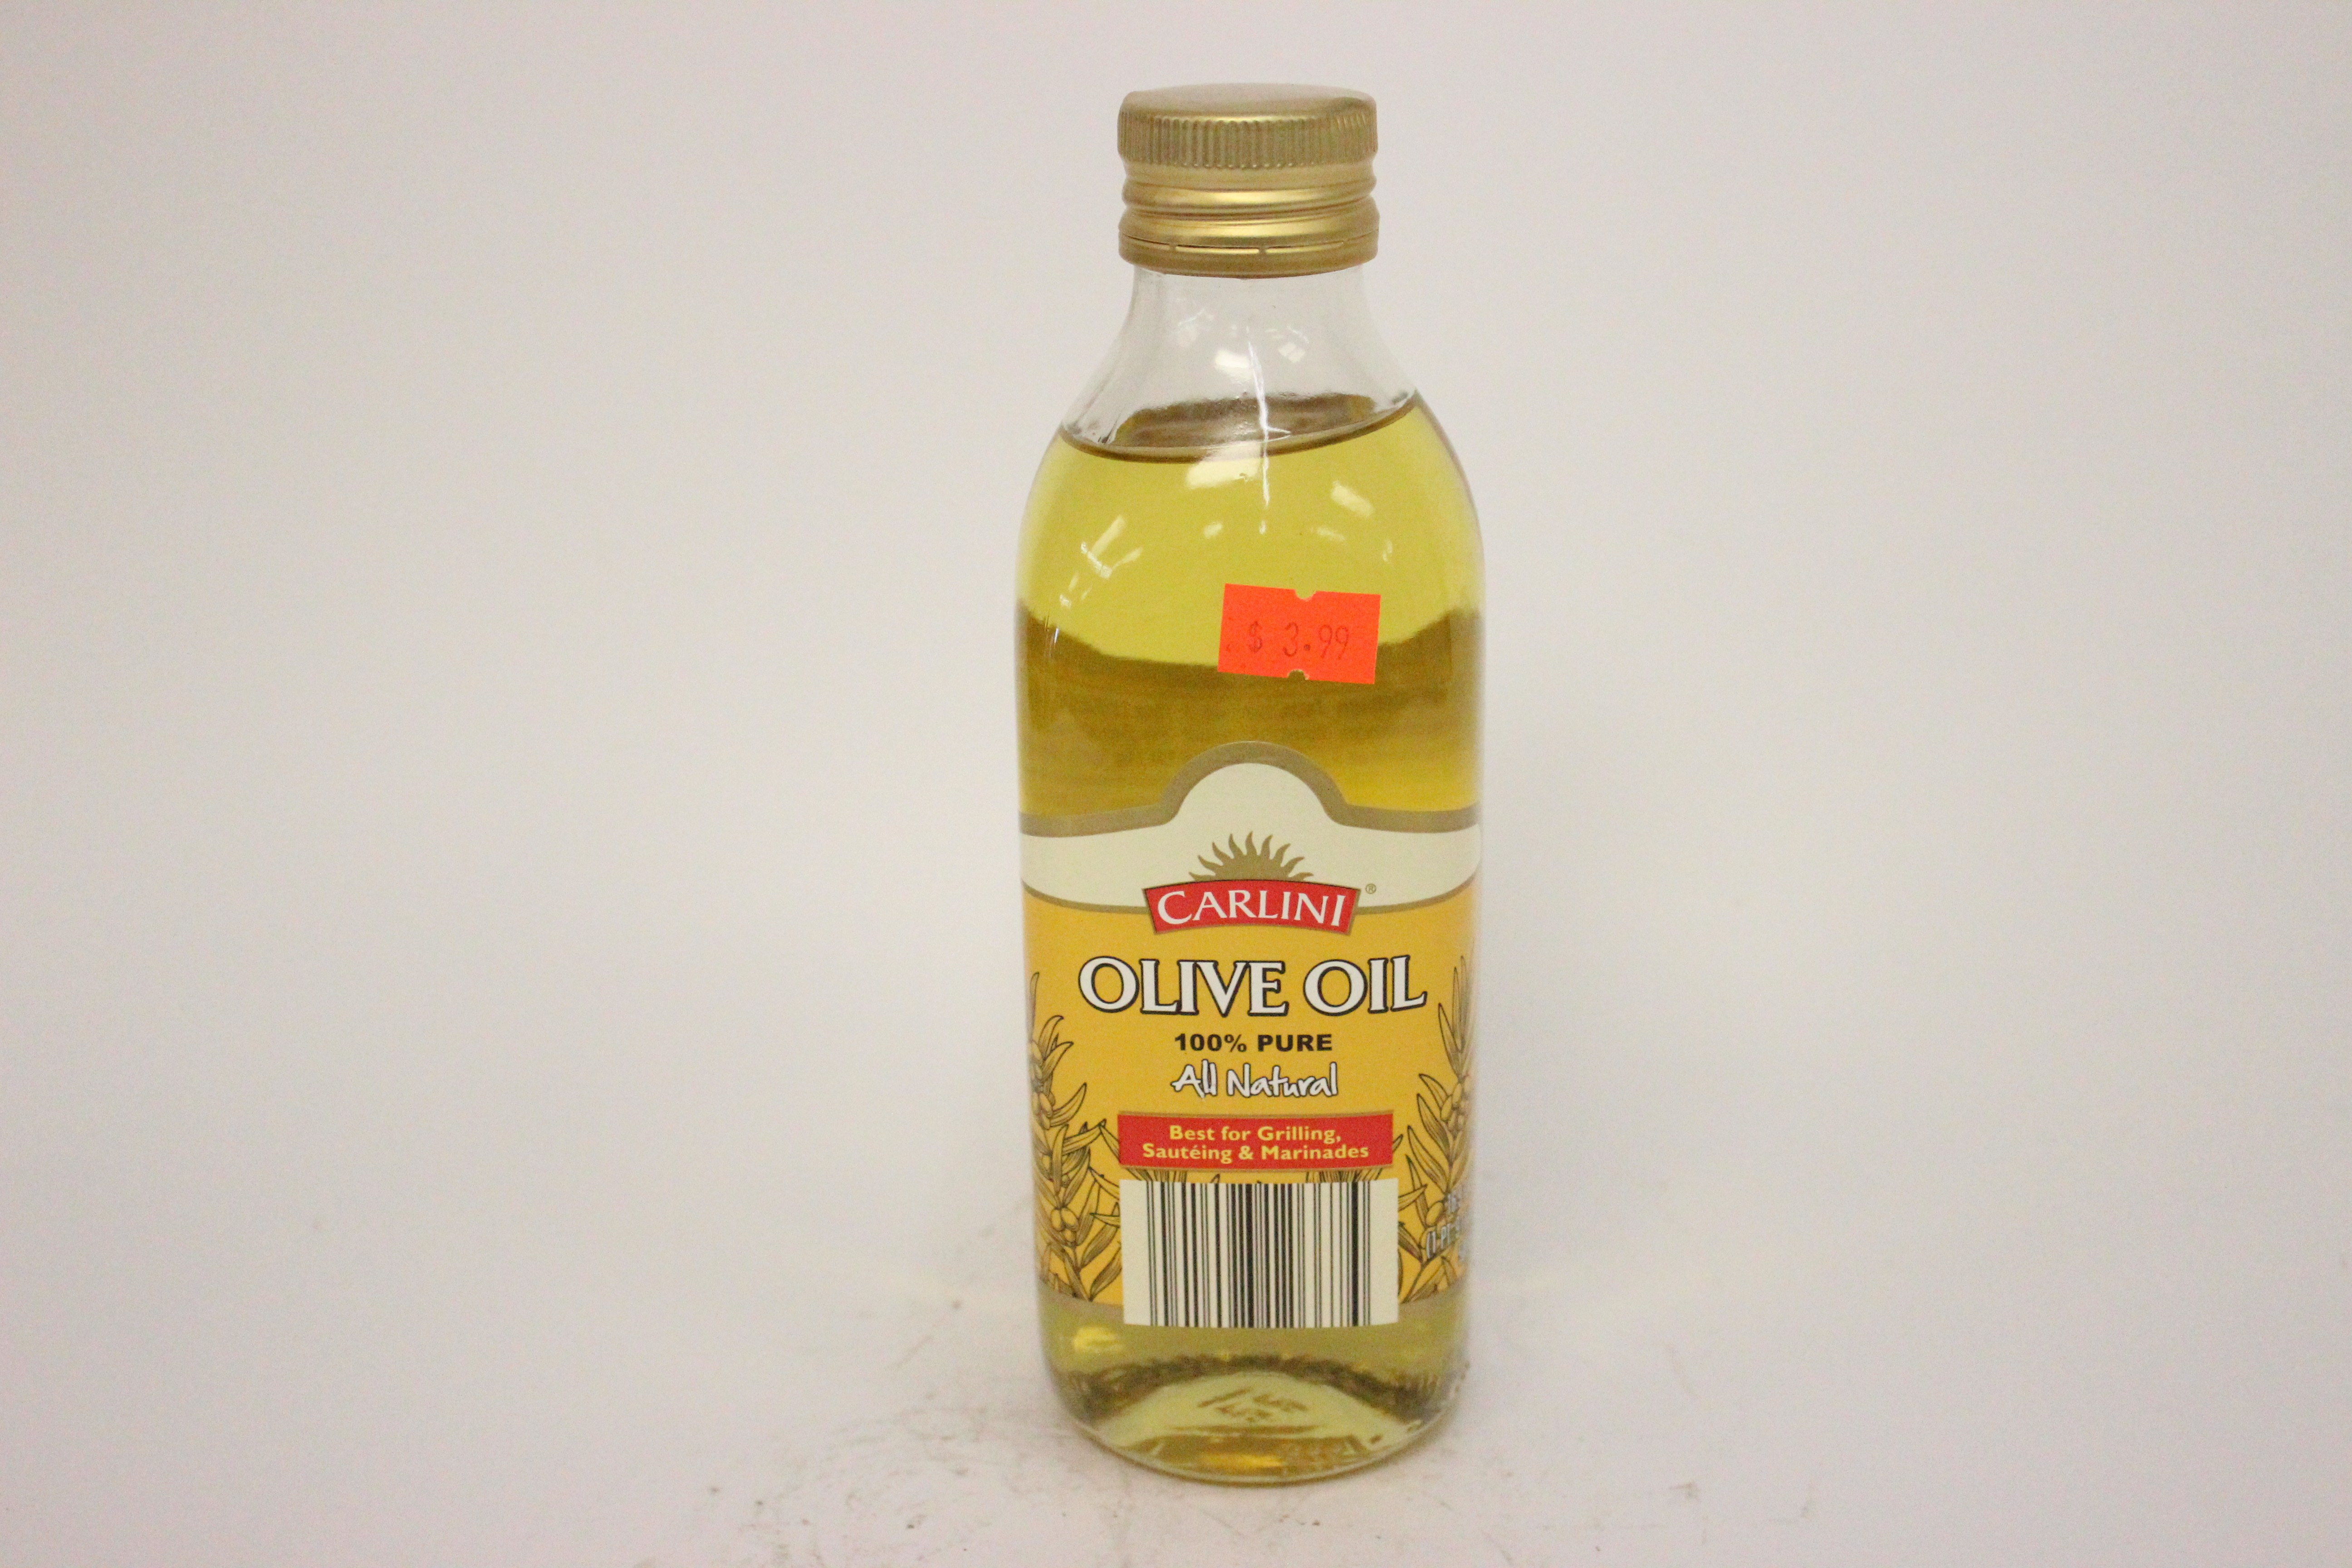 Carlini Olive Oil All Natural 16.9 oz